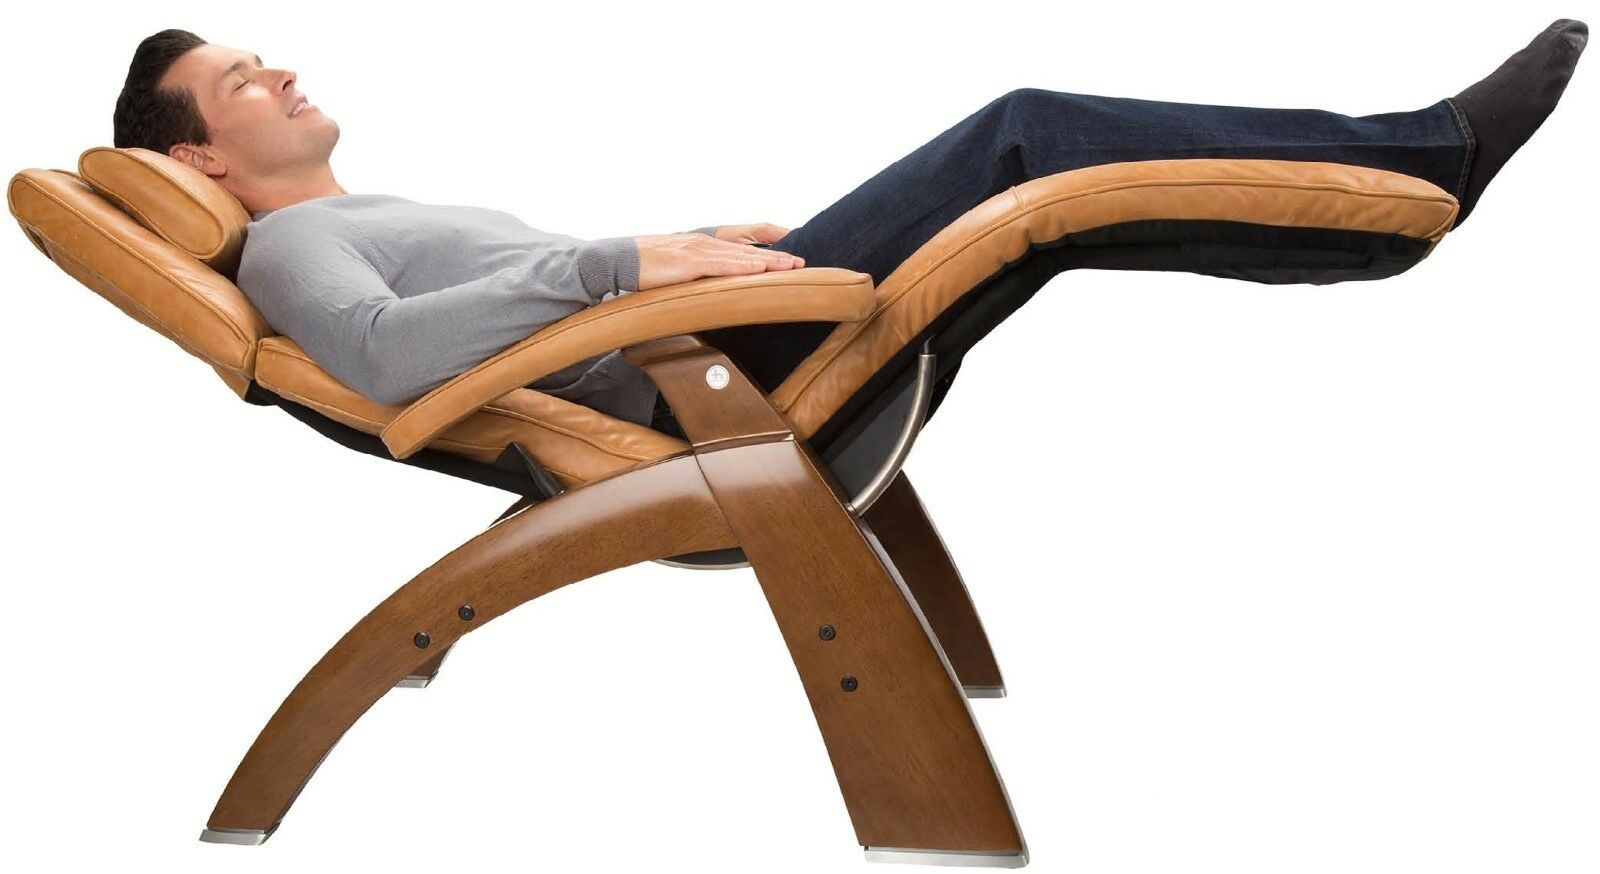 Human Touch PC-420 Perfect Chair Manual Zero Gravity Sycamor